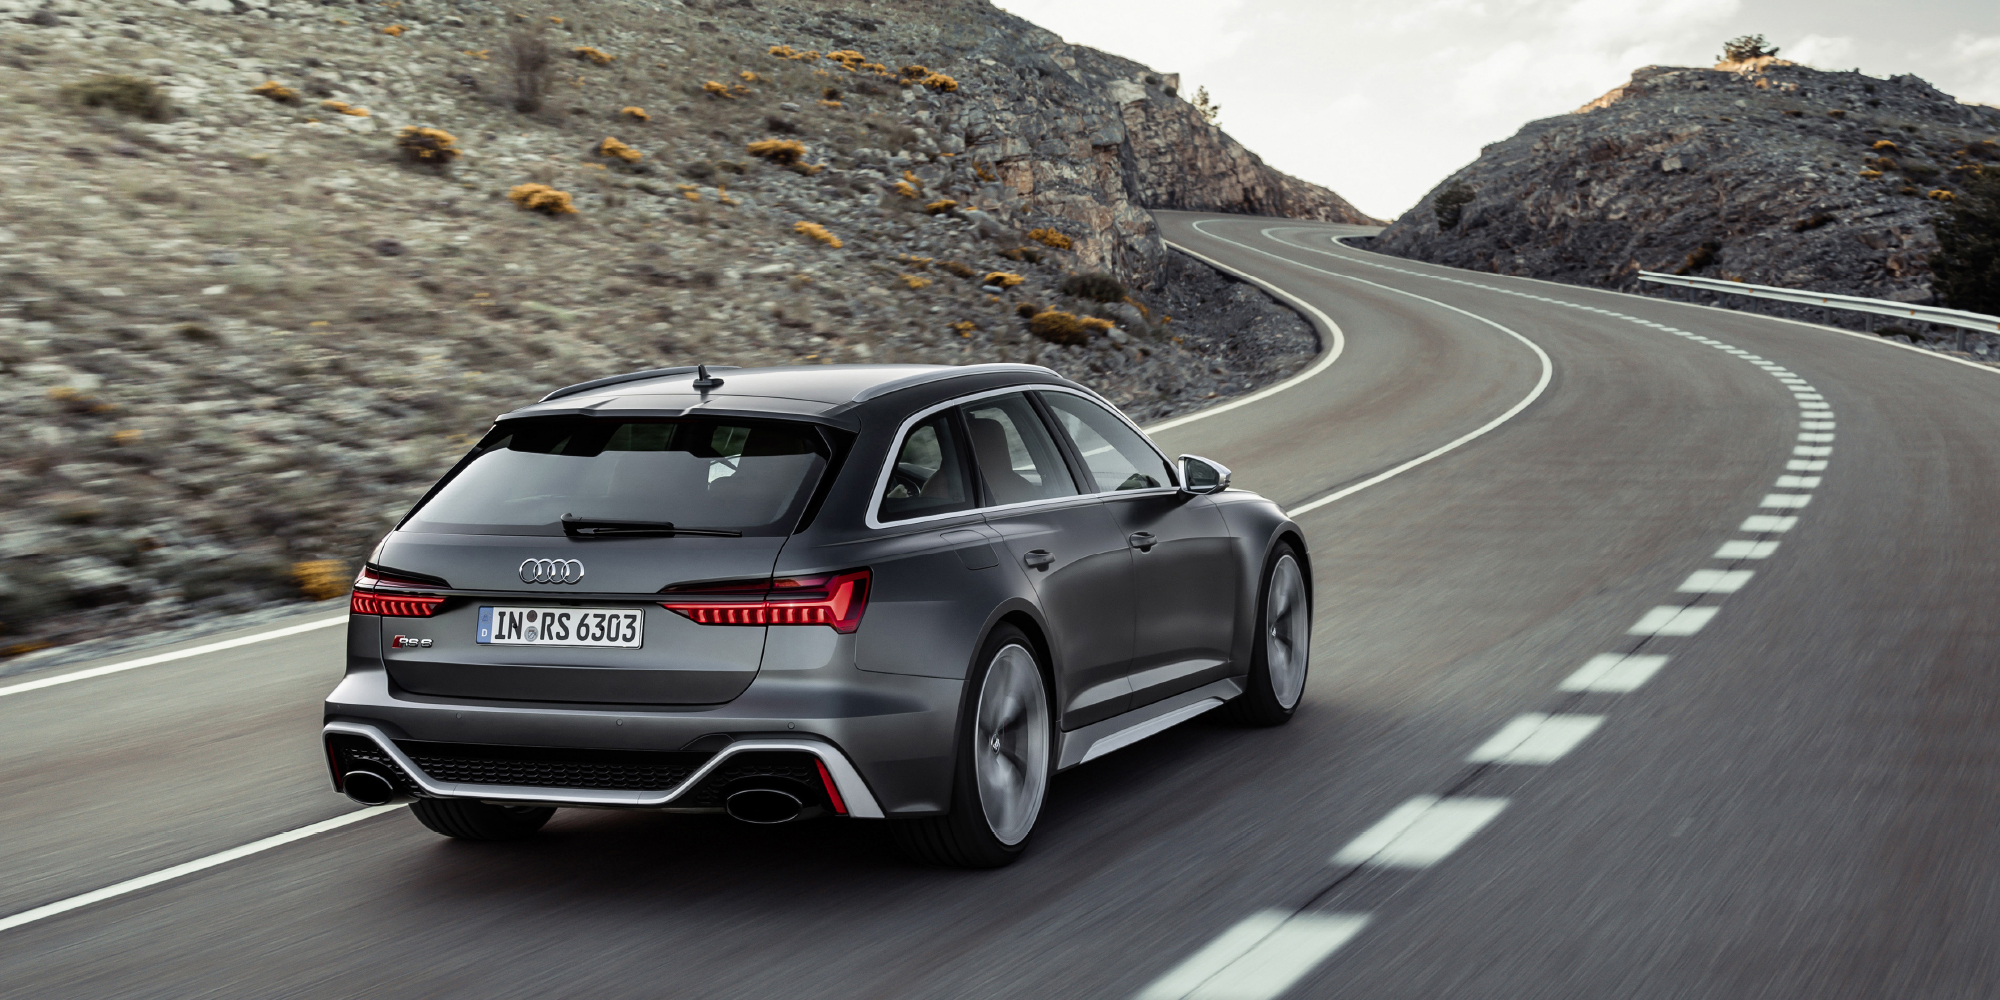 grey audi rs6 avant driving on the road